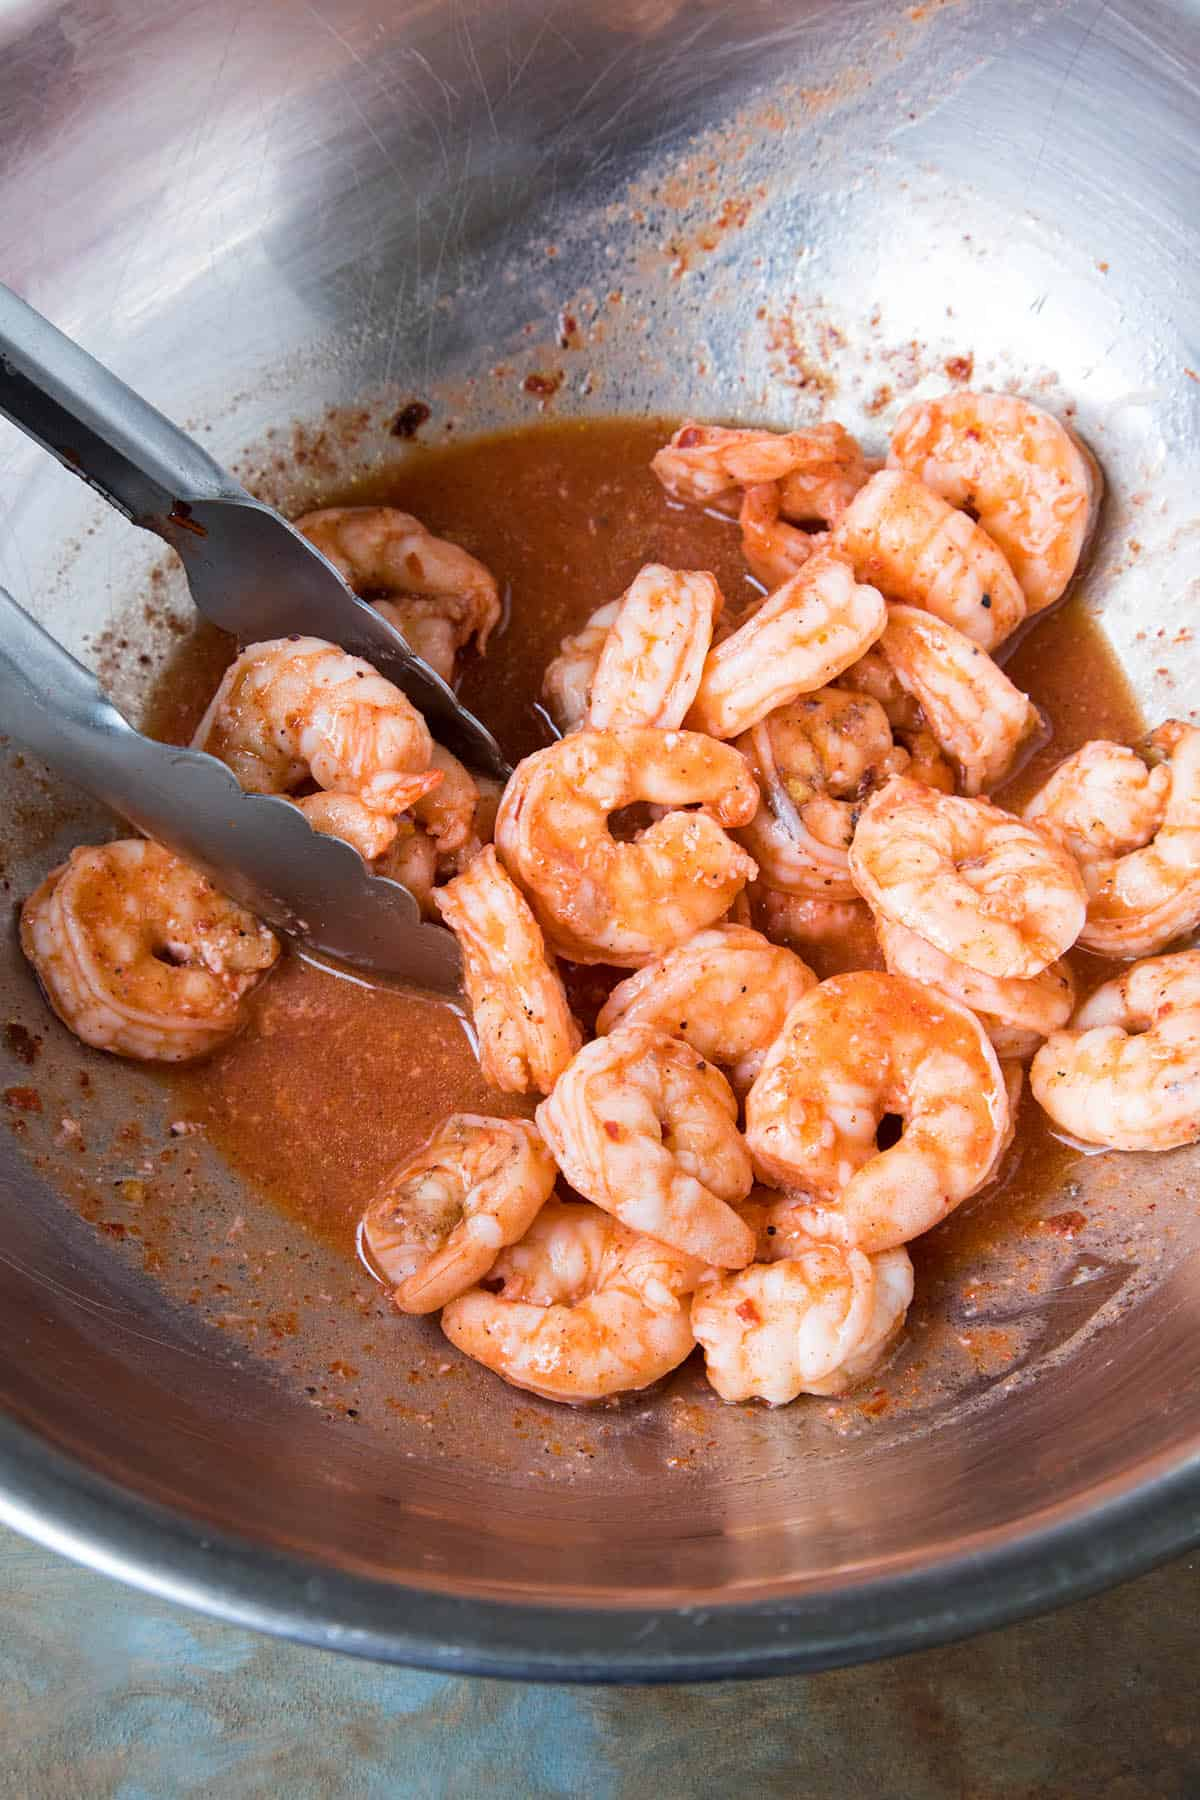 Tossing the shrimp in homemade Buffalo sauce